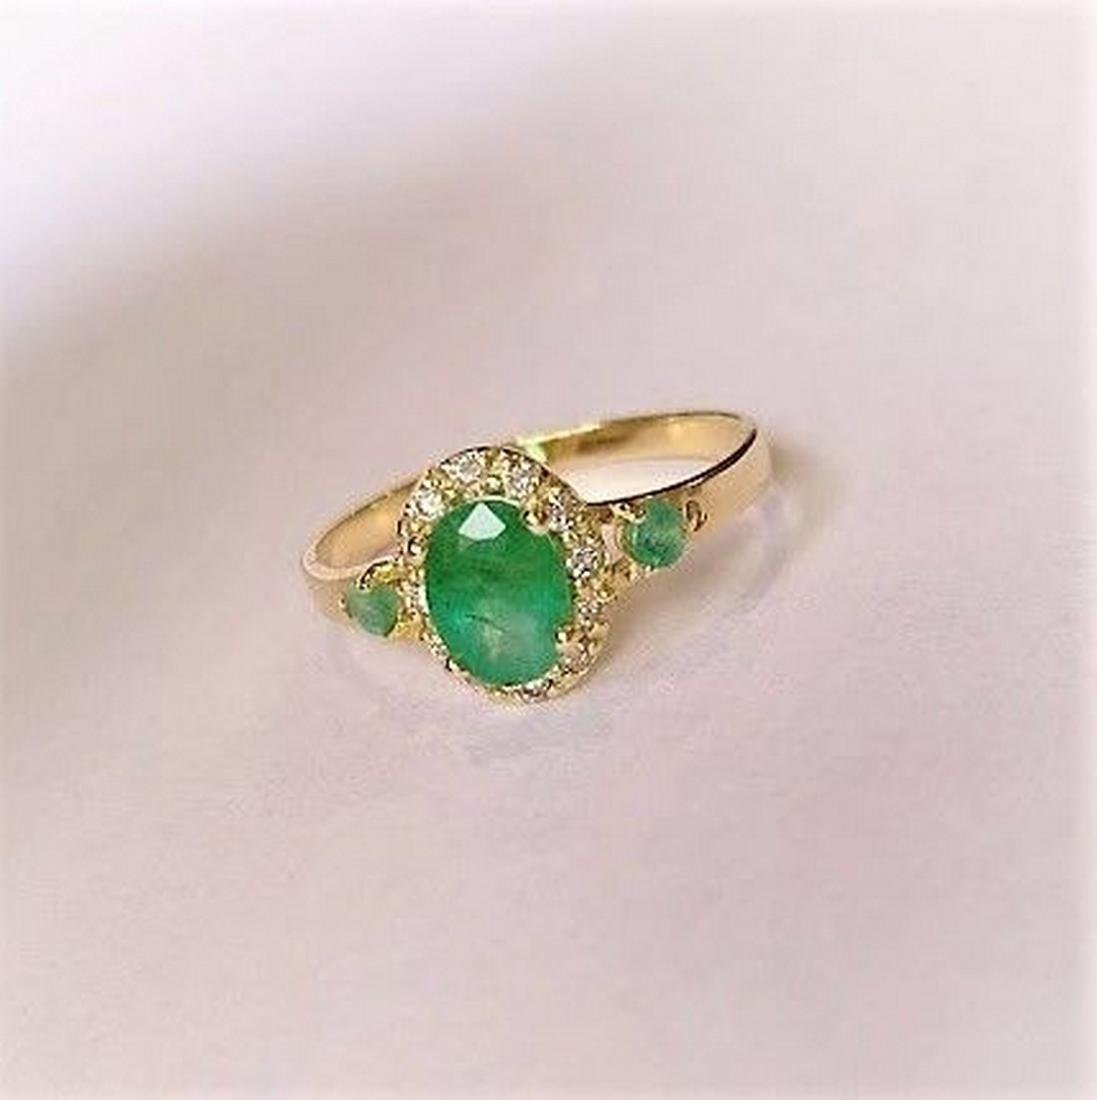 New Emerald Ring with 12 Diamonds 14k Gold Made in - 3